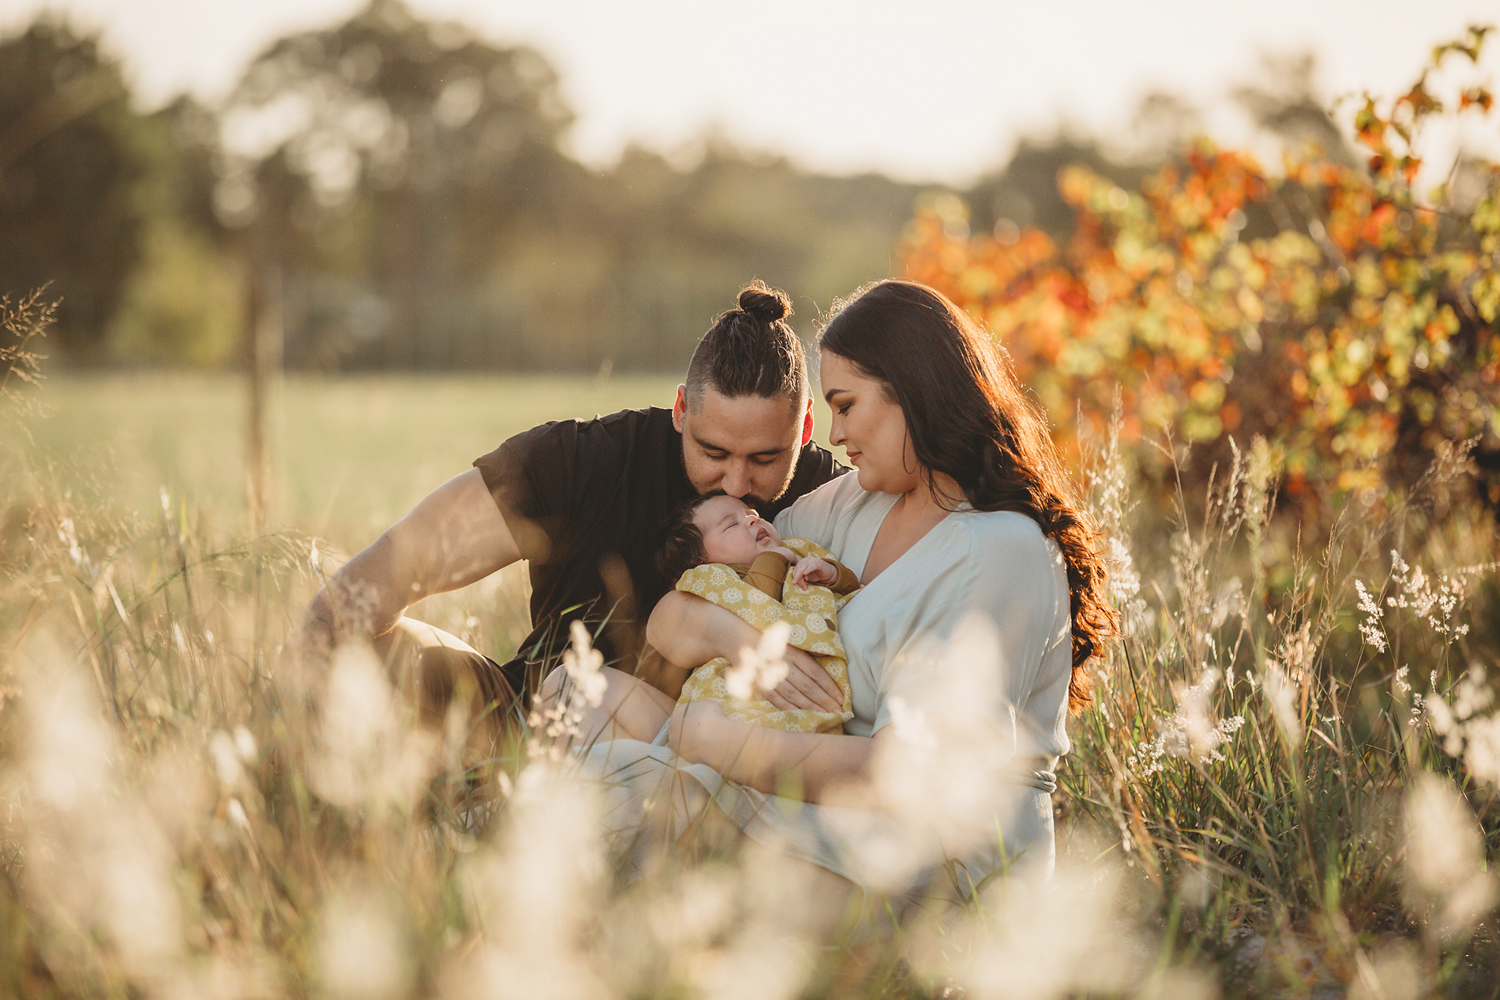 kissing-in-the-grass-perth-family-photography.jpg